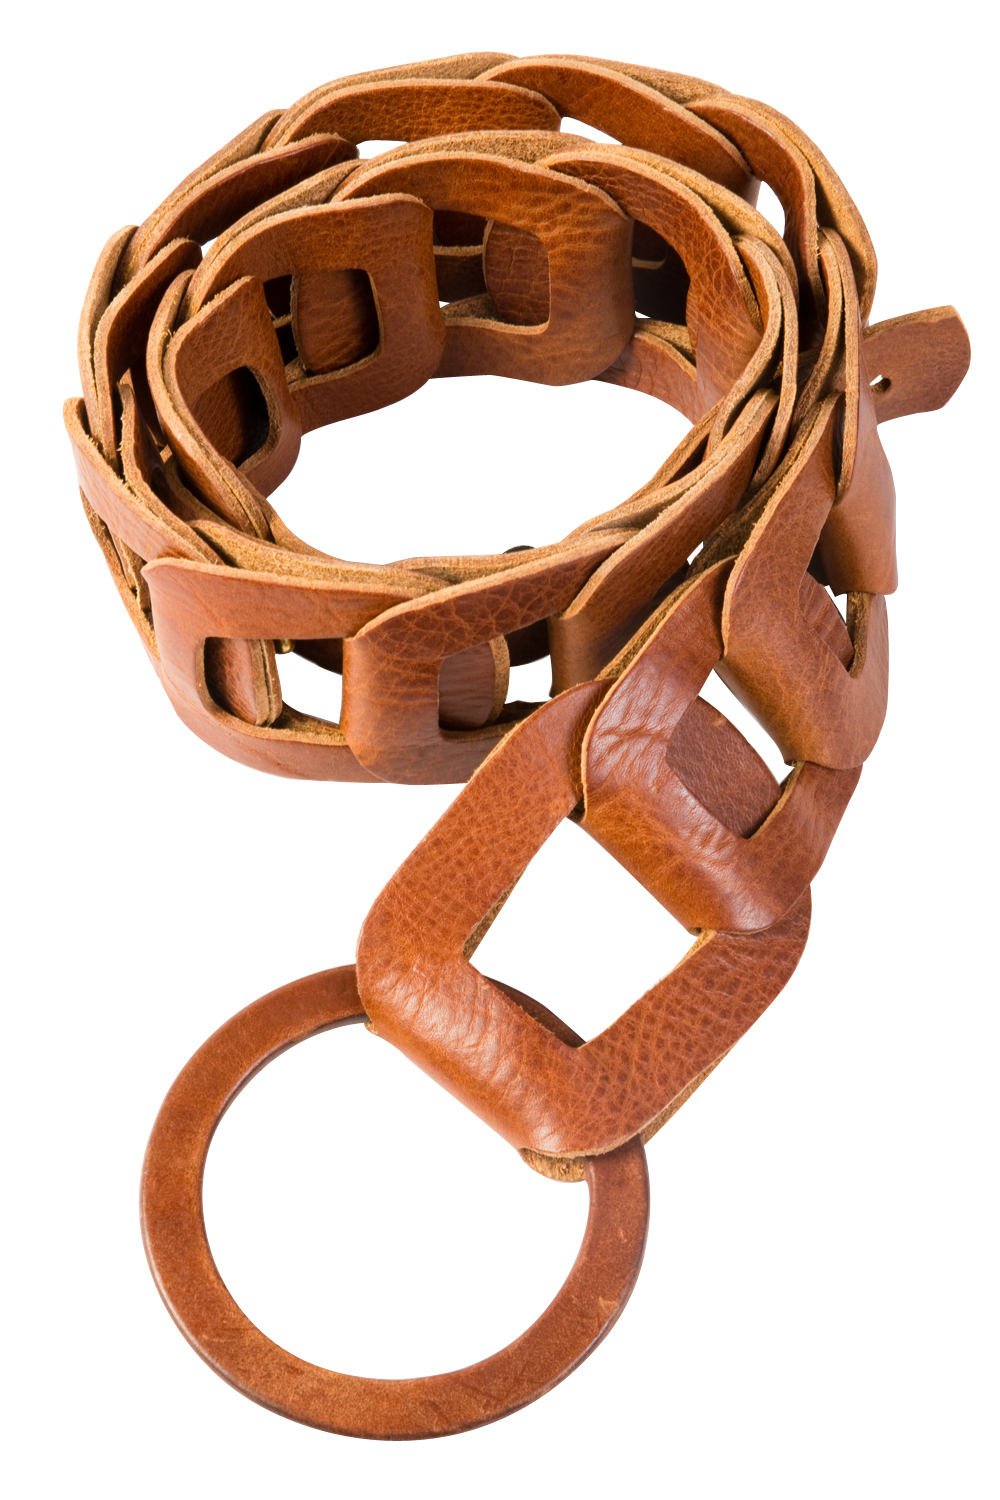 Brave leather link belt in cognac, $110 at Lori + Lulu